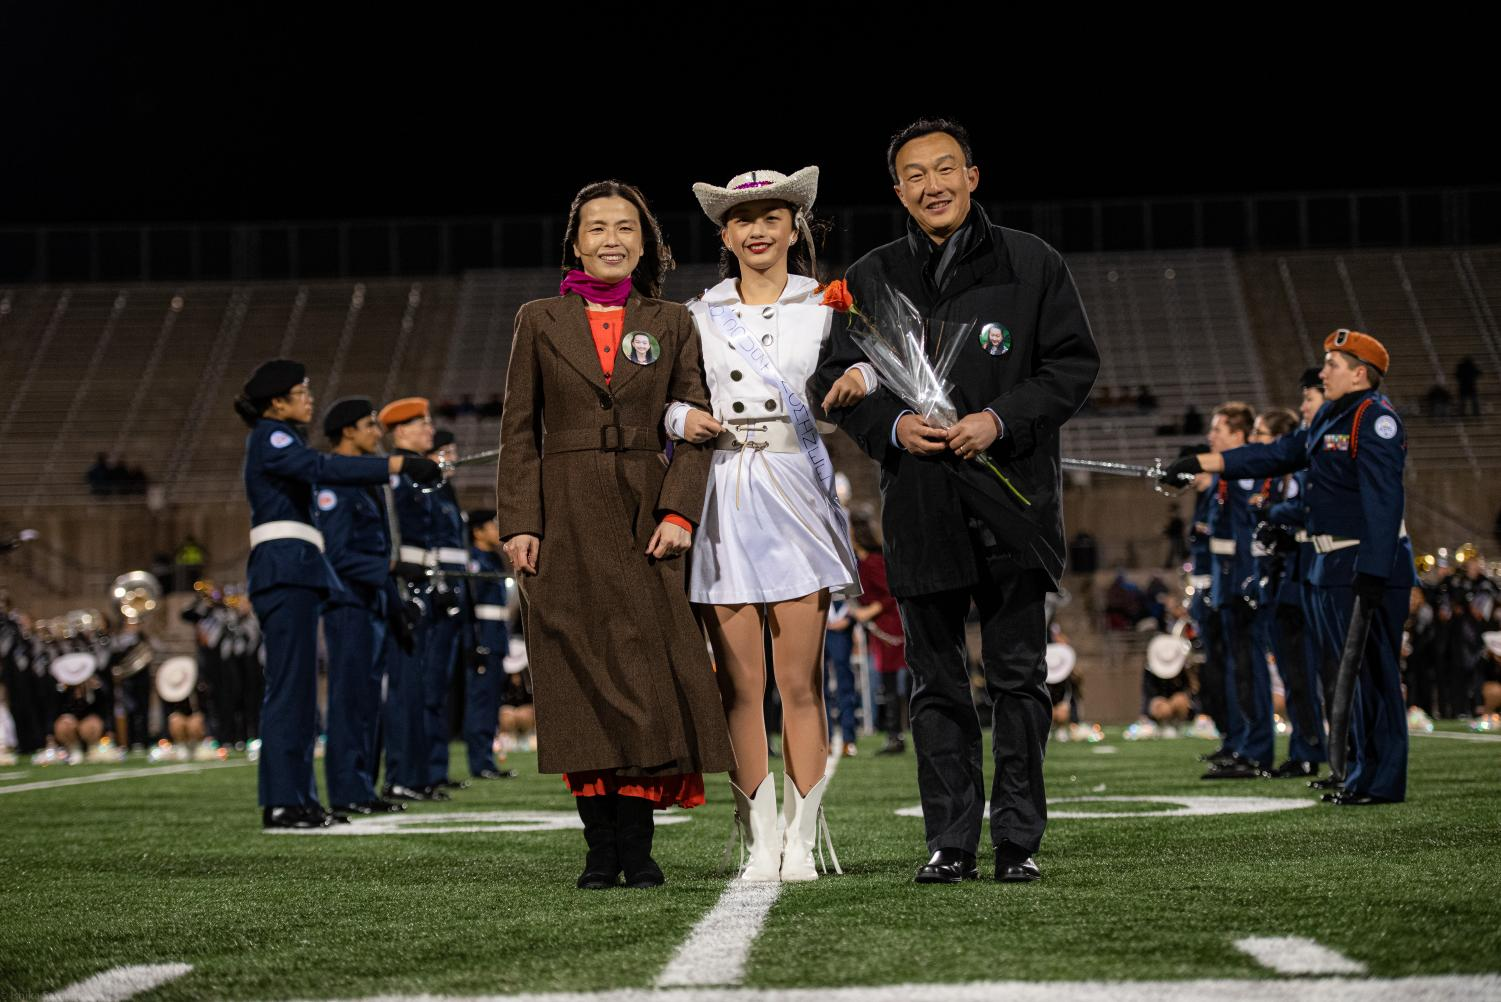 Homecoming+Queen+Ashley+Zhang+%2720+stands+in+front+of+the+Westwood+student+body+and+faculty.+Homecoming+queen+was+crowned+by+Westwood+alumni+and+2017+homecoming+queen.